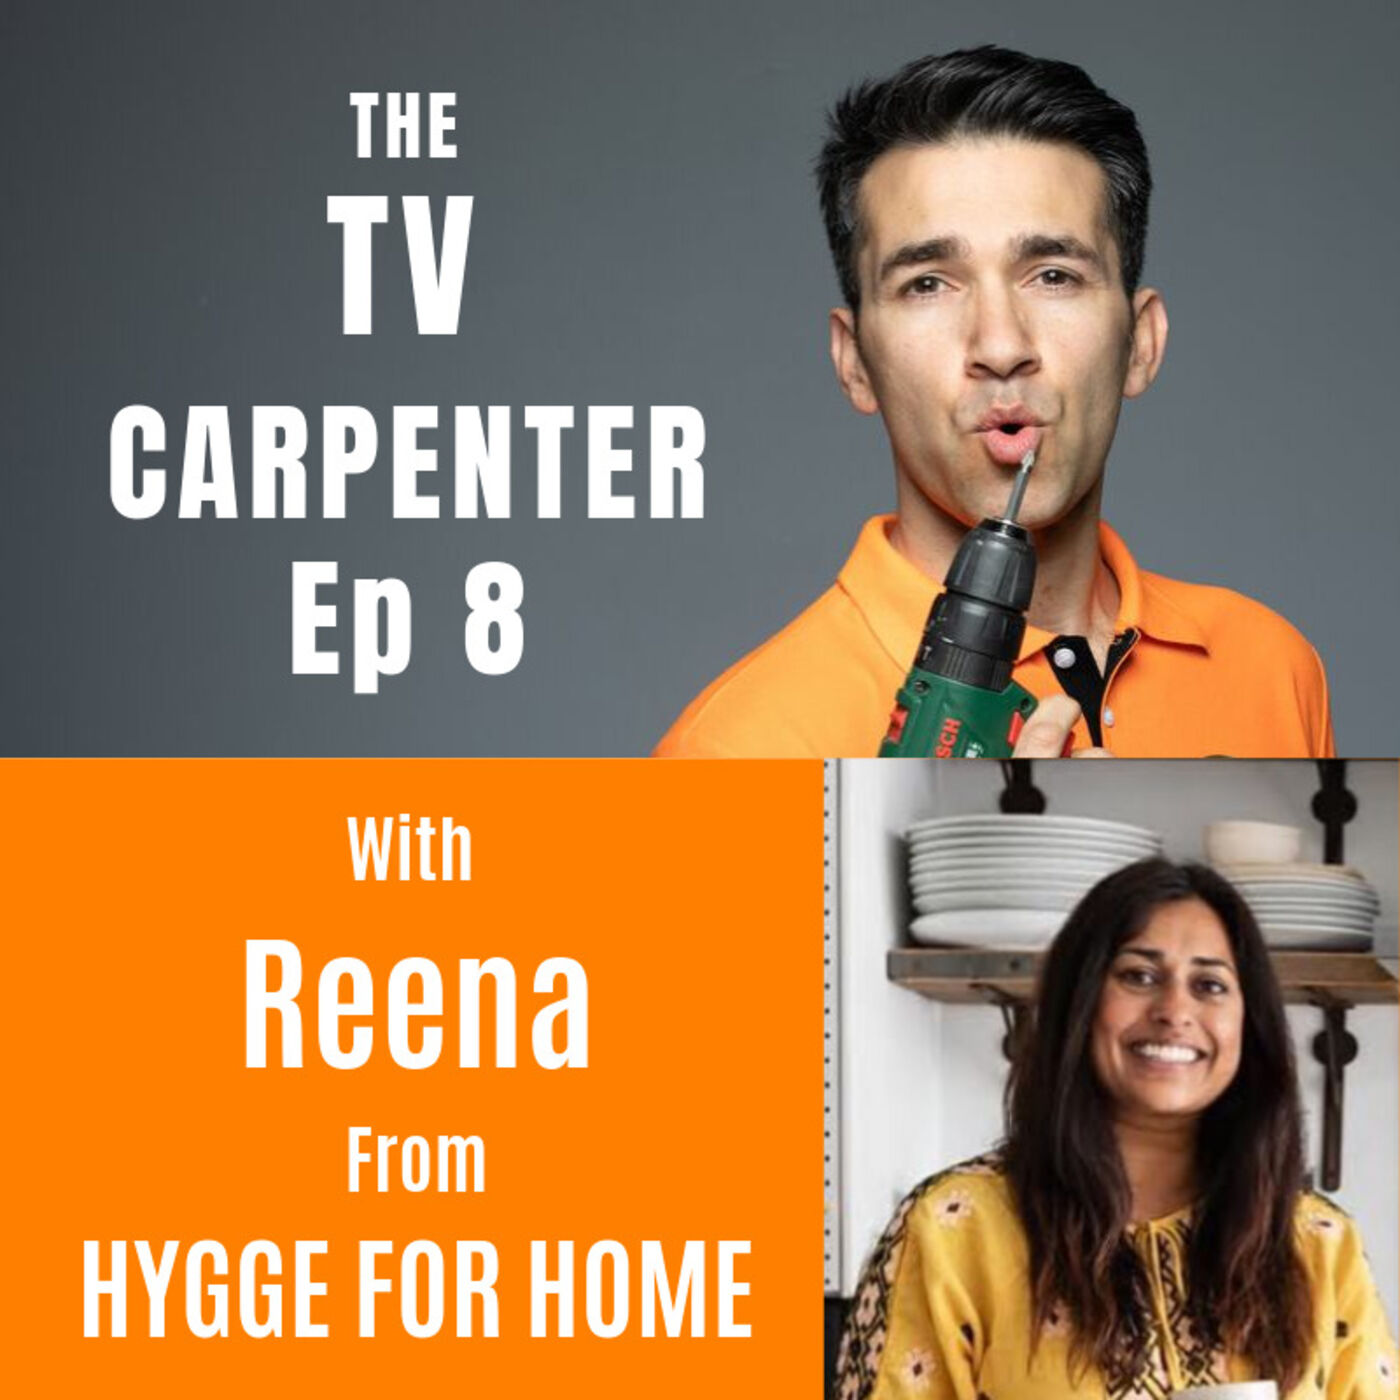 Wayne chats with Reena from Hygge for Home